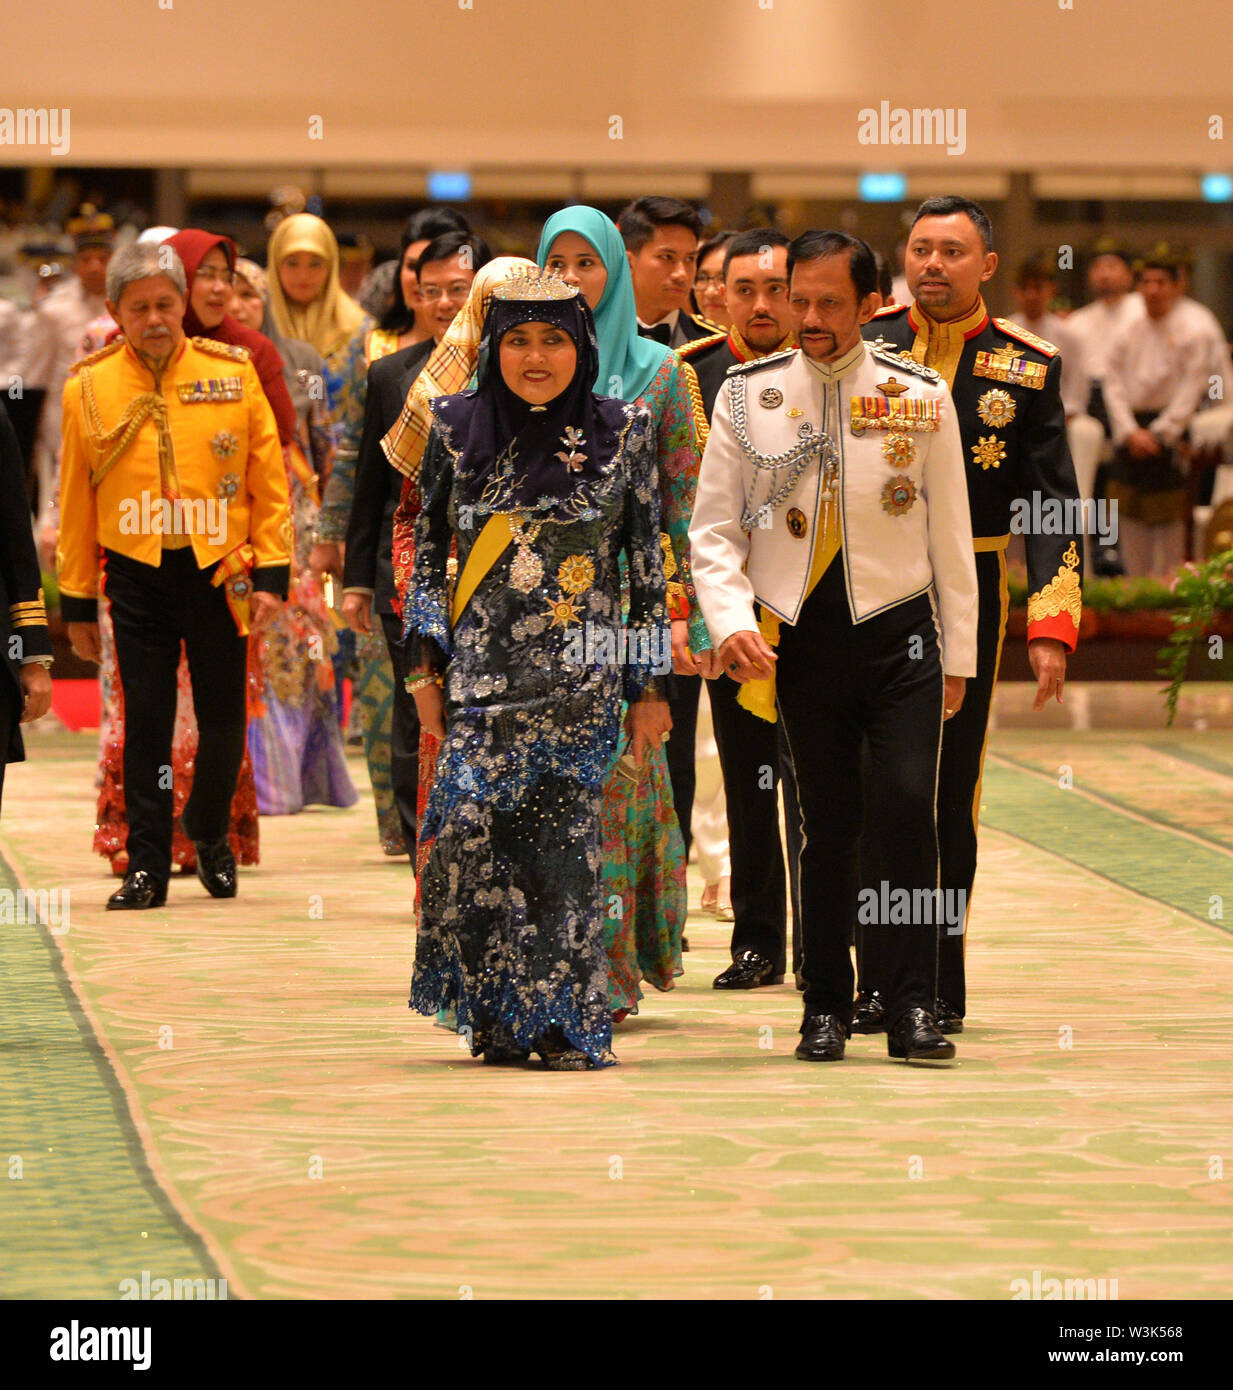 (190716) -- BANDAR SERI BEGAWAN, July 16, 2019 (Xinhua) -- Brunei's Sultan Haji Hassanal Bolkiah (R, front) attends a state banquet in celebration of his 73rd birthday at Istana Nurul Iman, the royal palace, in Bandar Seri Begawan, capital of Brunei, July 15, 2019. Around 4,000 people comprising of members of the royal families, state dignitaries and foreign diplomatic corps, as well as foreign invited guests attended a grand state banquet in conjunction with the Sultan's 73rd birthday celebration on Monday night at the royal palace - Istana Nurul Iman. Born on July 15, 1946, the Sultan is - Stock Image